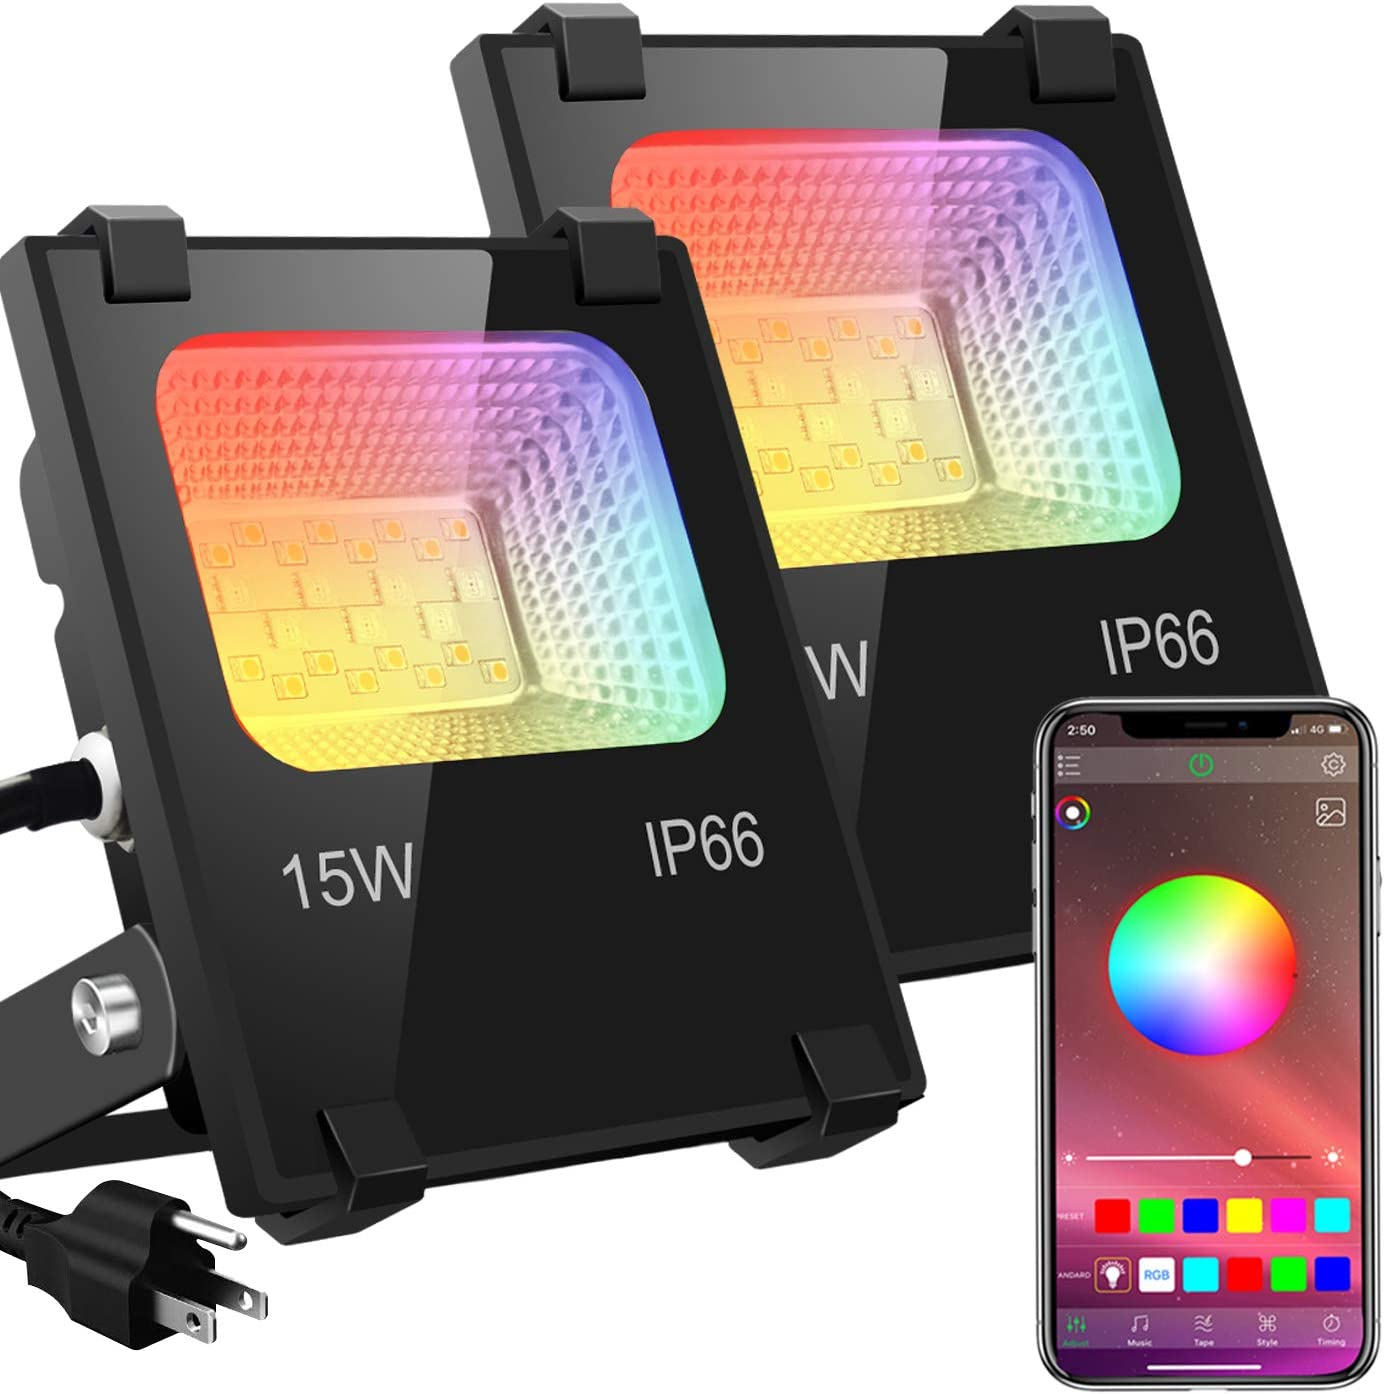 LED Flood Lights RGB Outdoor, 15W Bluetooth RGB Color Changing Floodlight APP Control Lighting, IP66 Waterproof, 2700K & 16 Million Colors 20 Modes for Landscape Garden Stage Lighting (2 Pack)